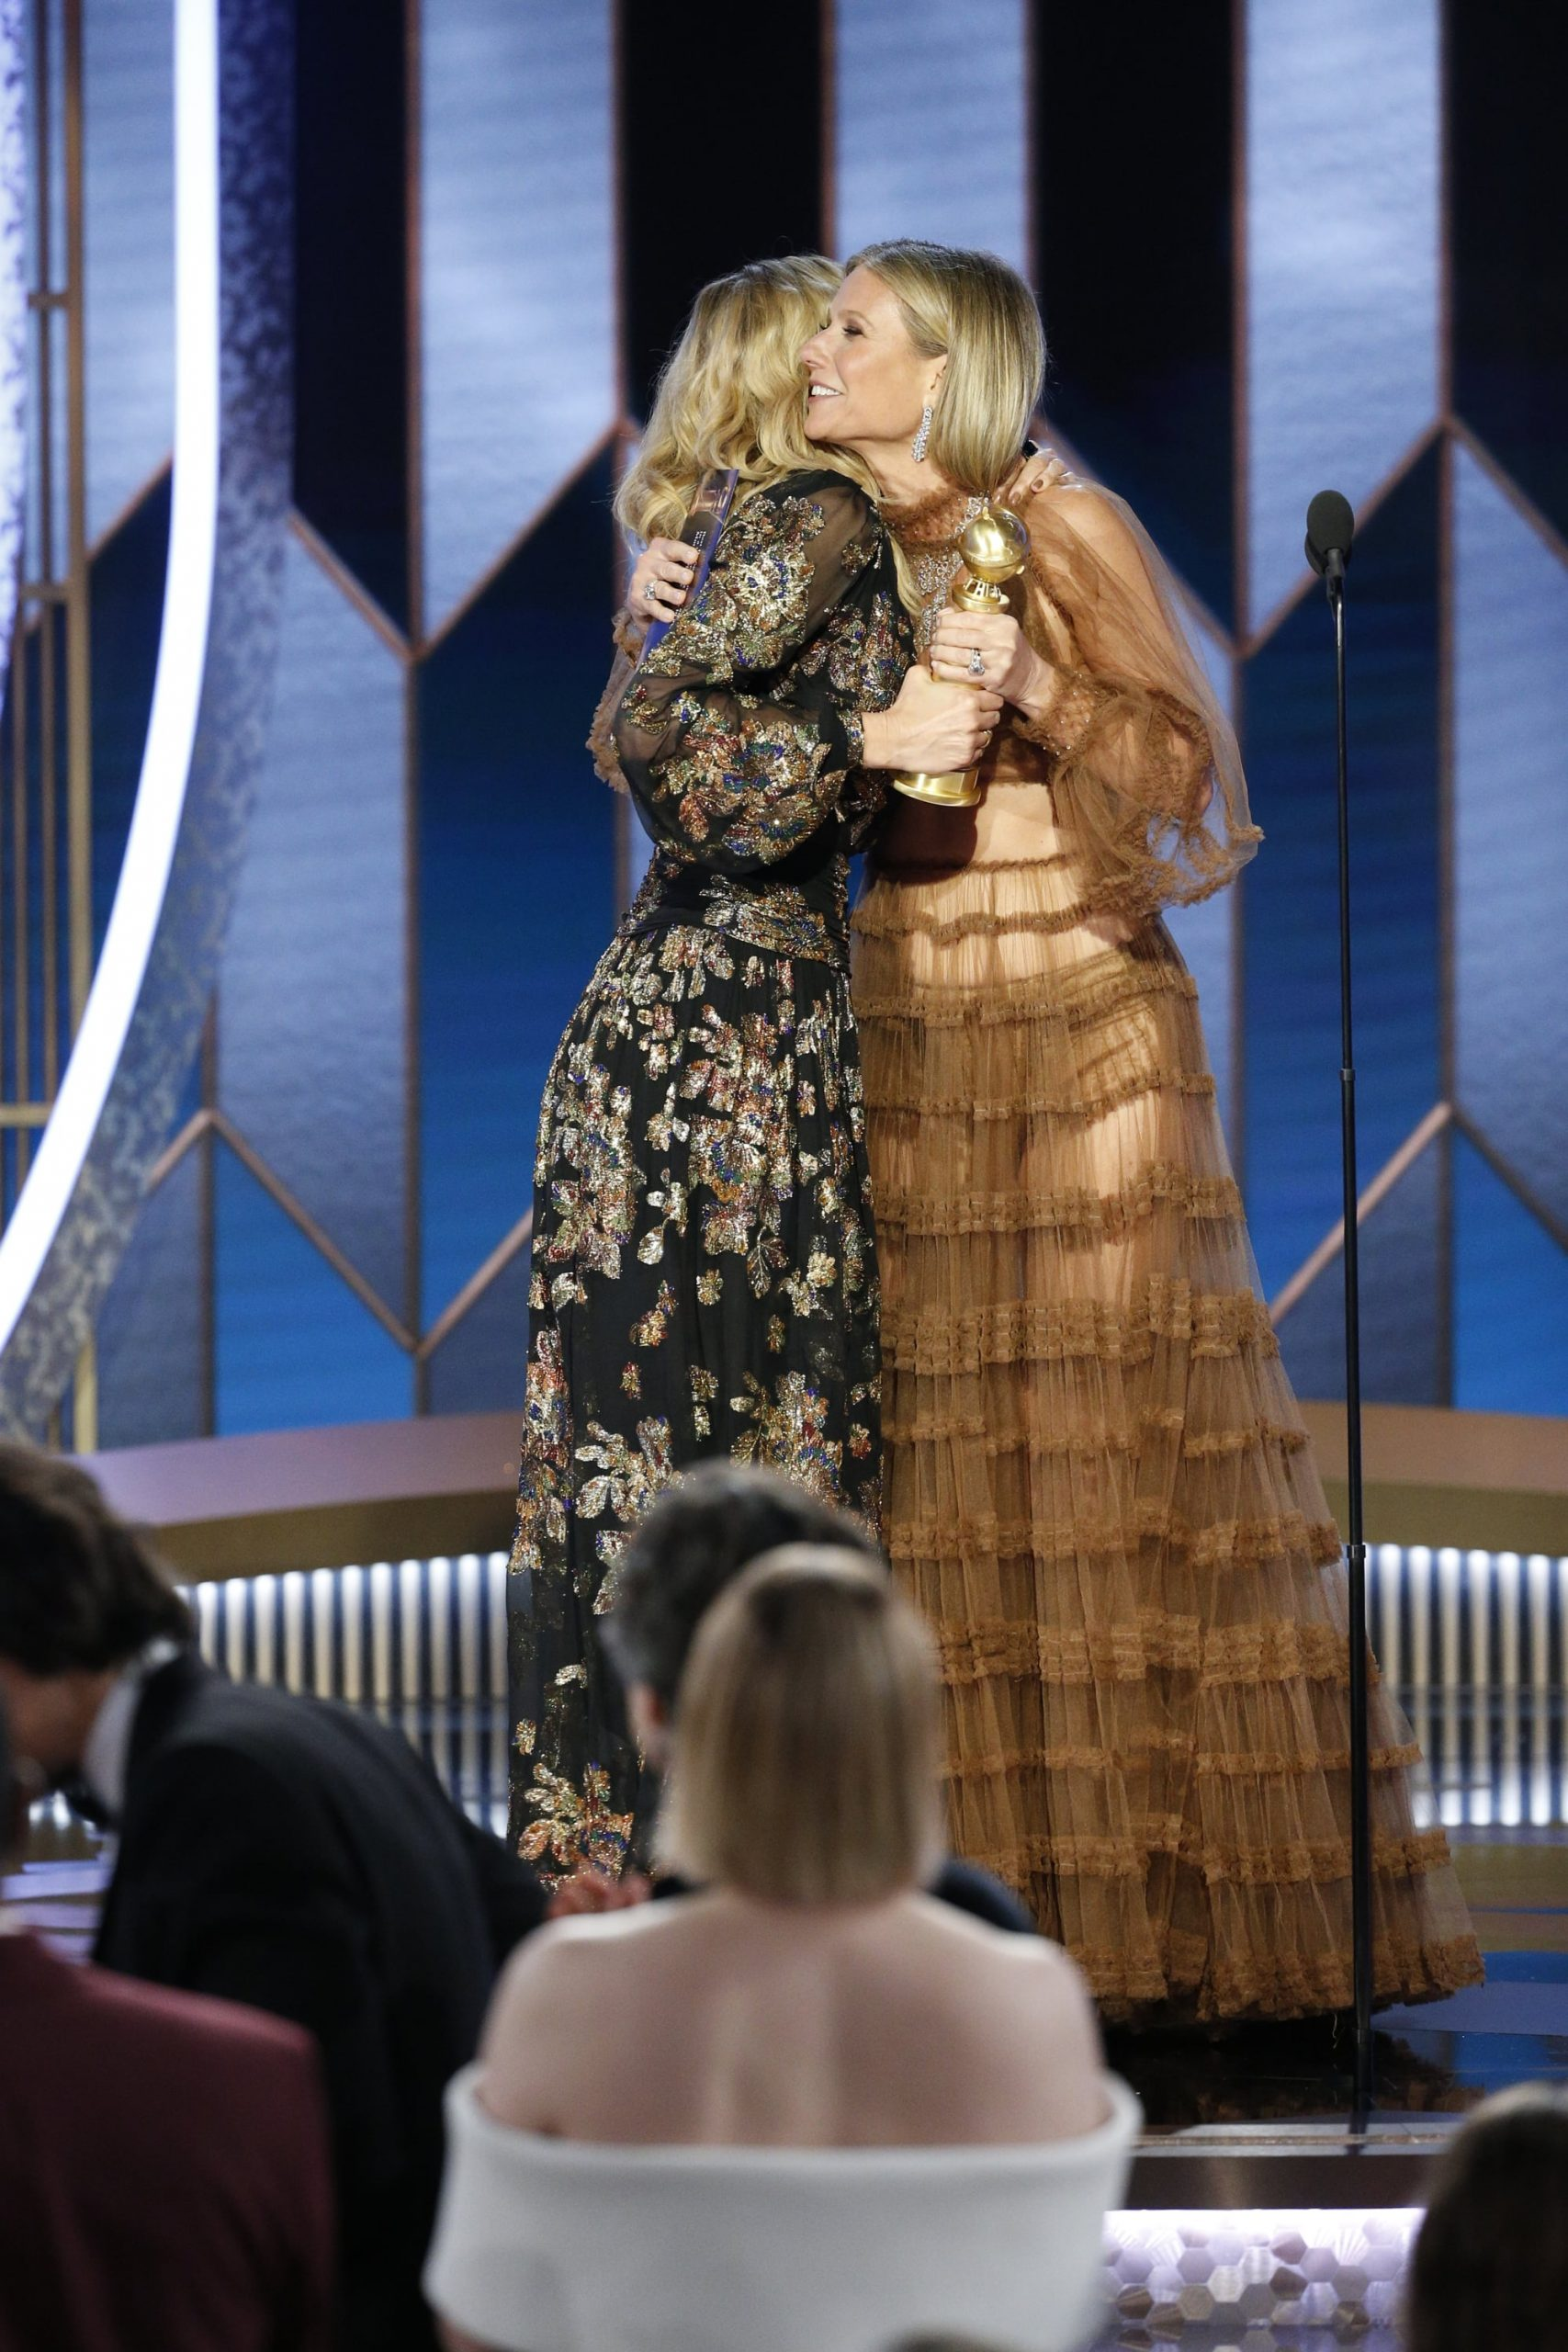 Laura Dern Gwyneth Paltrow at 2020 Golden Globes scaled - Editor's Letter